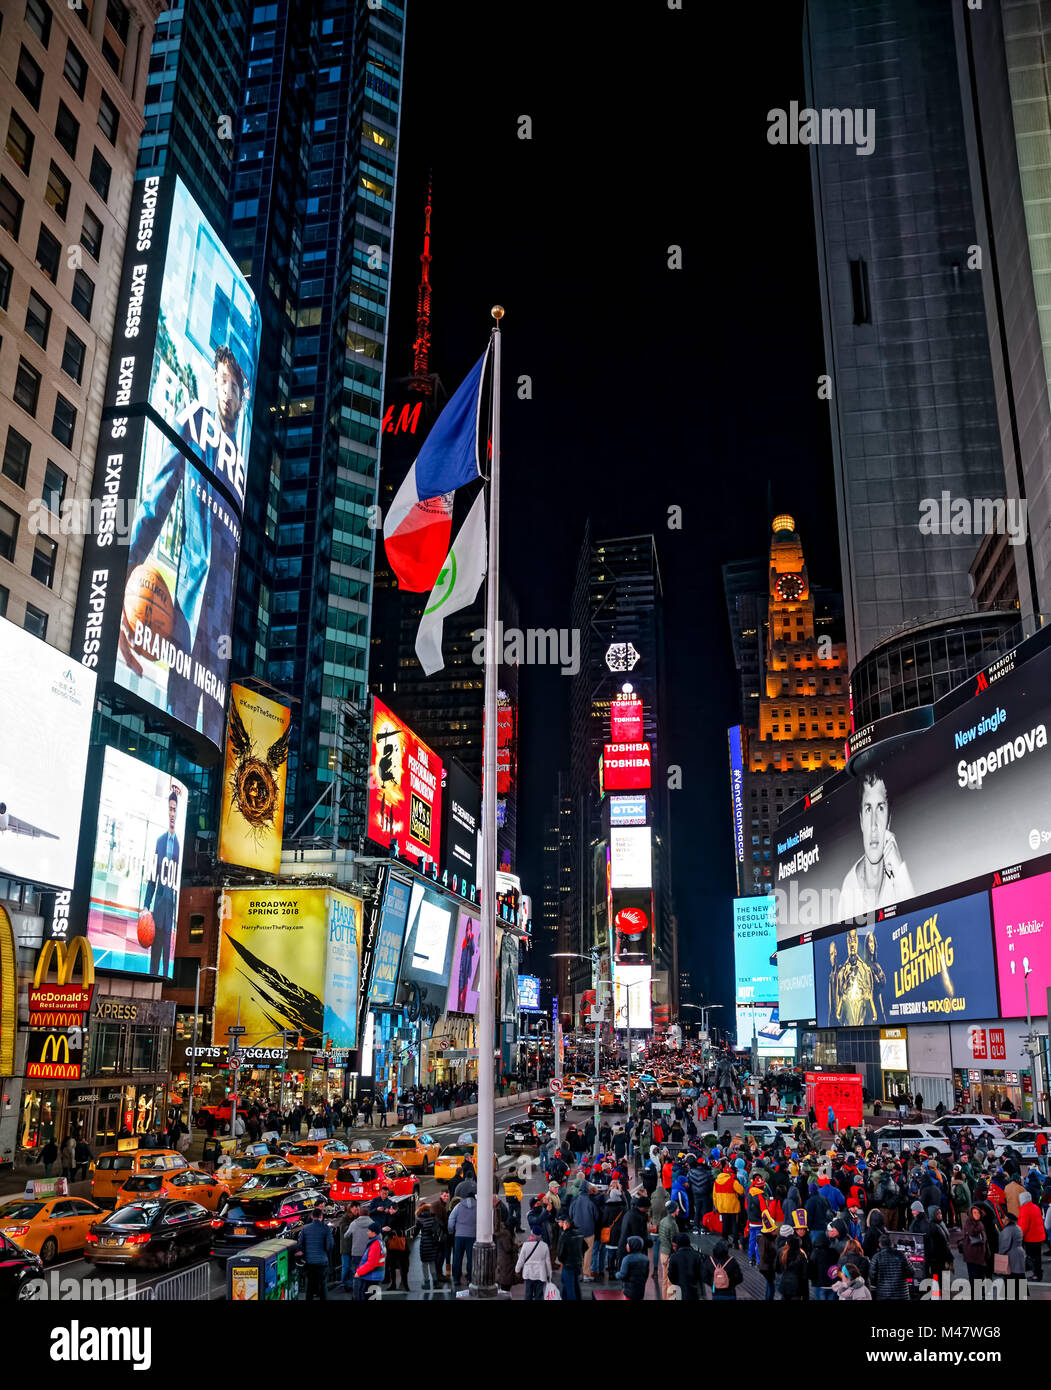 New York Times Square - Stock Image